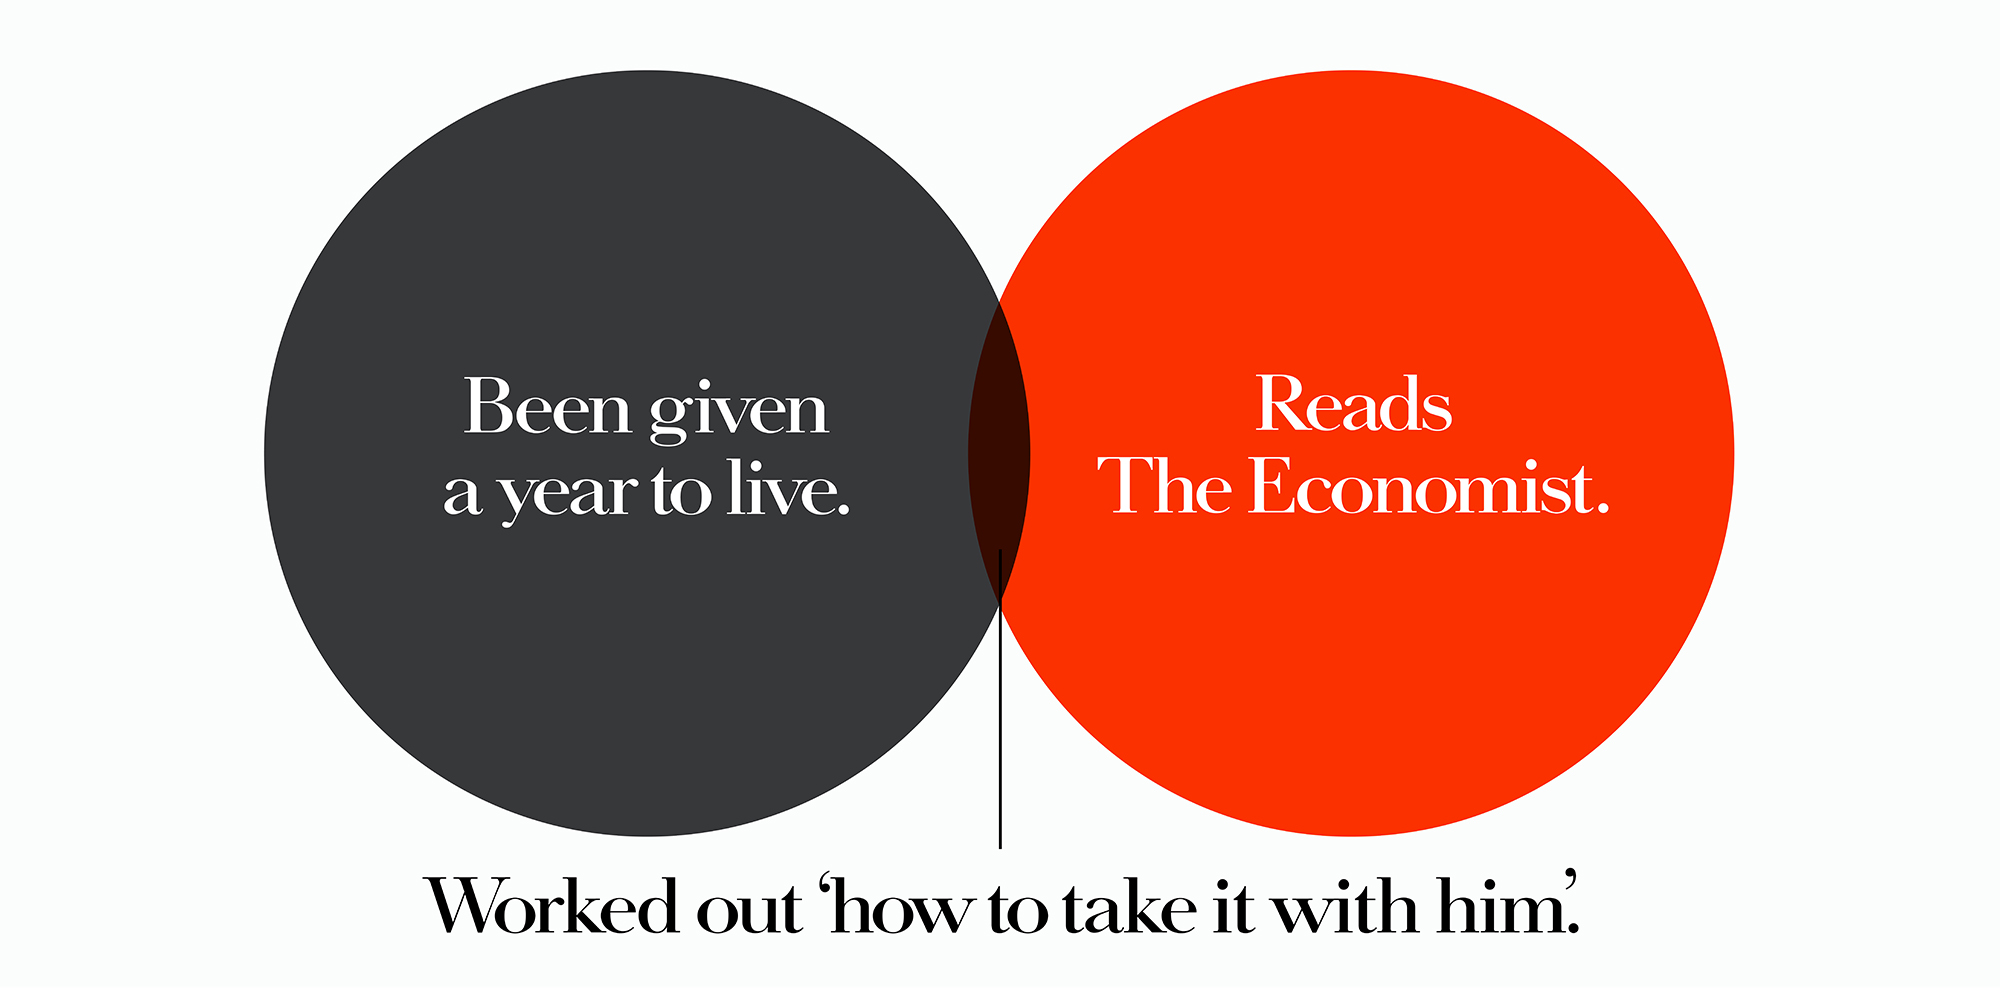 'Been Given A' The Economist, Dave Dye, Venn, 48 sheet, AMV-BBDO